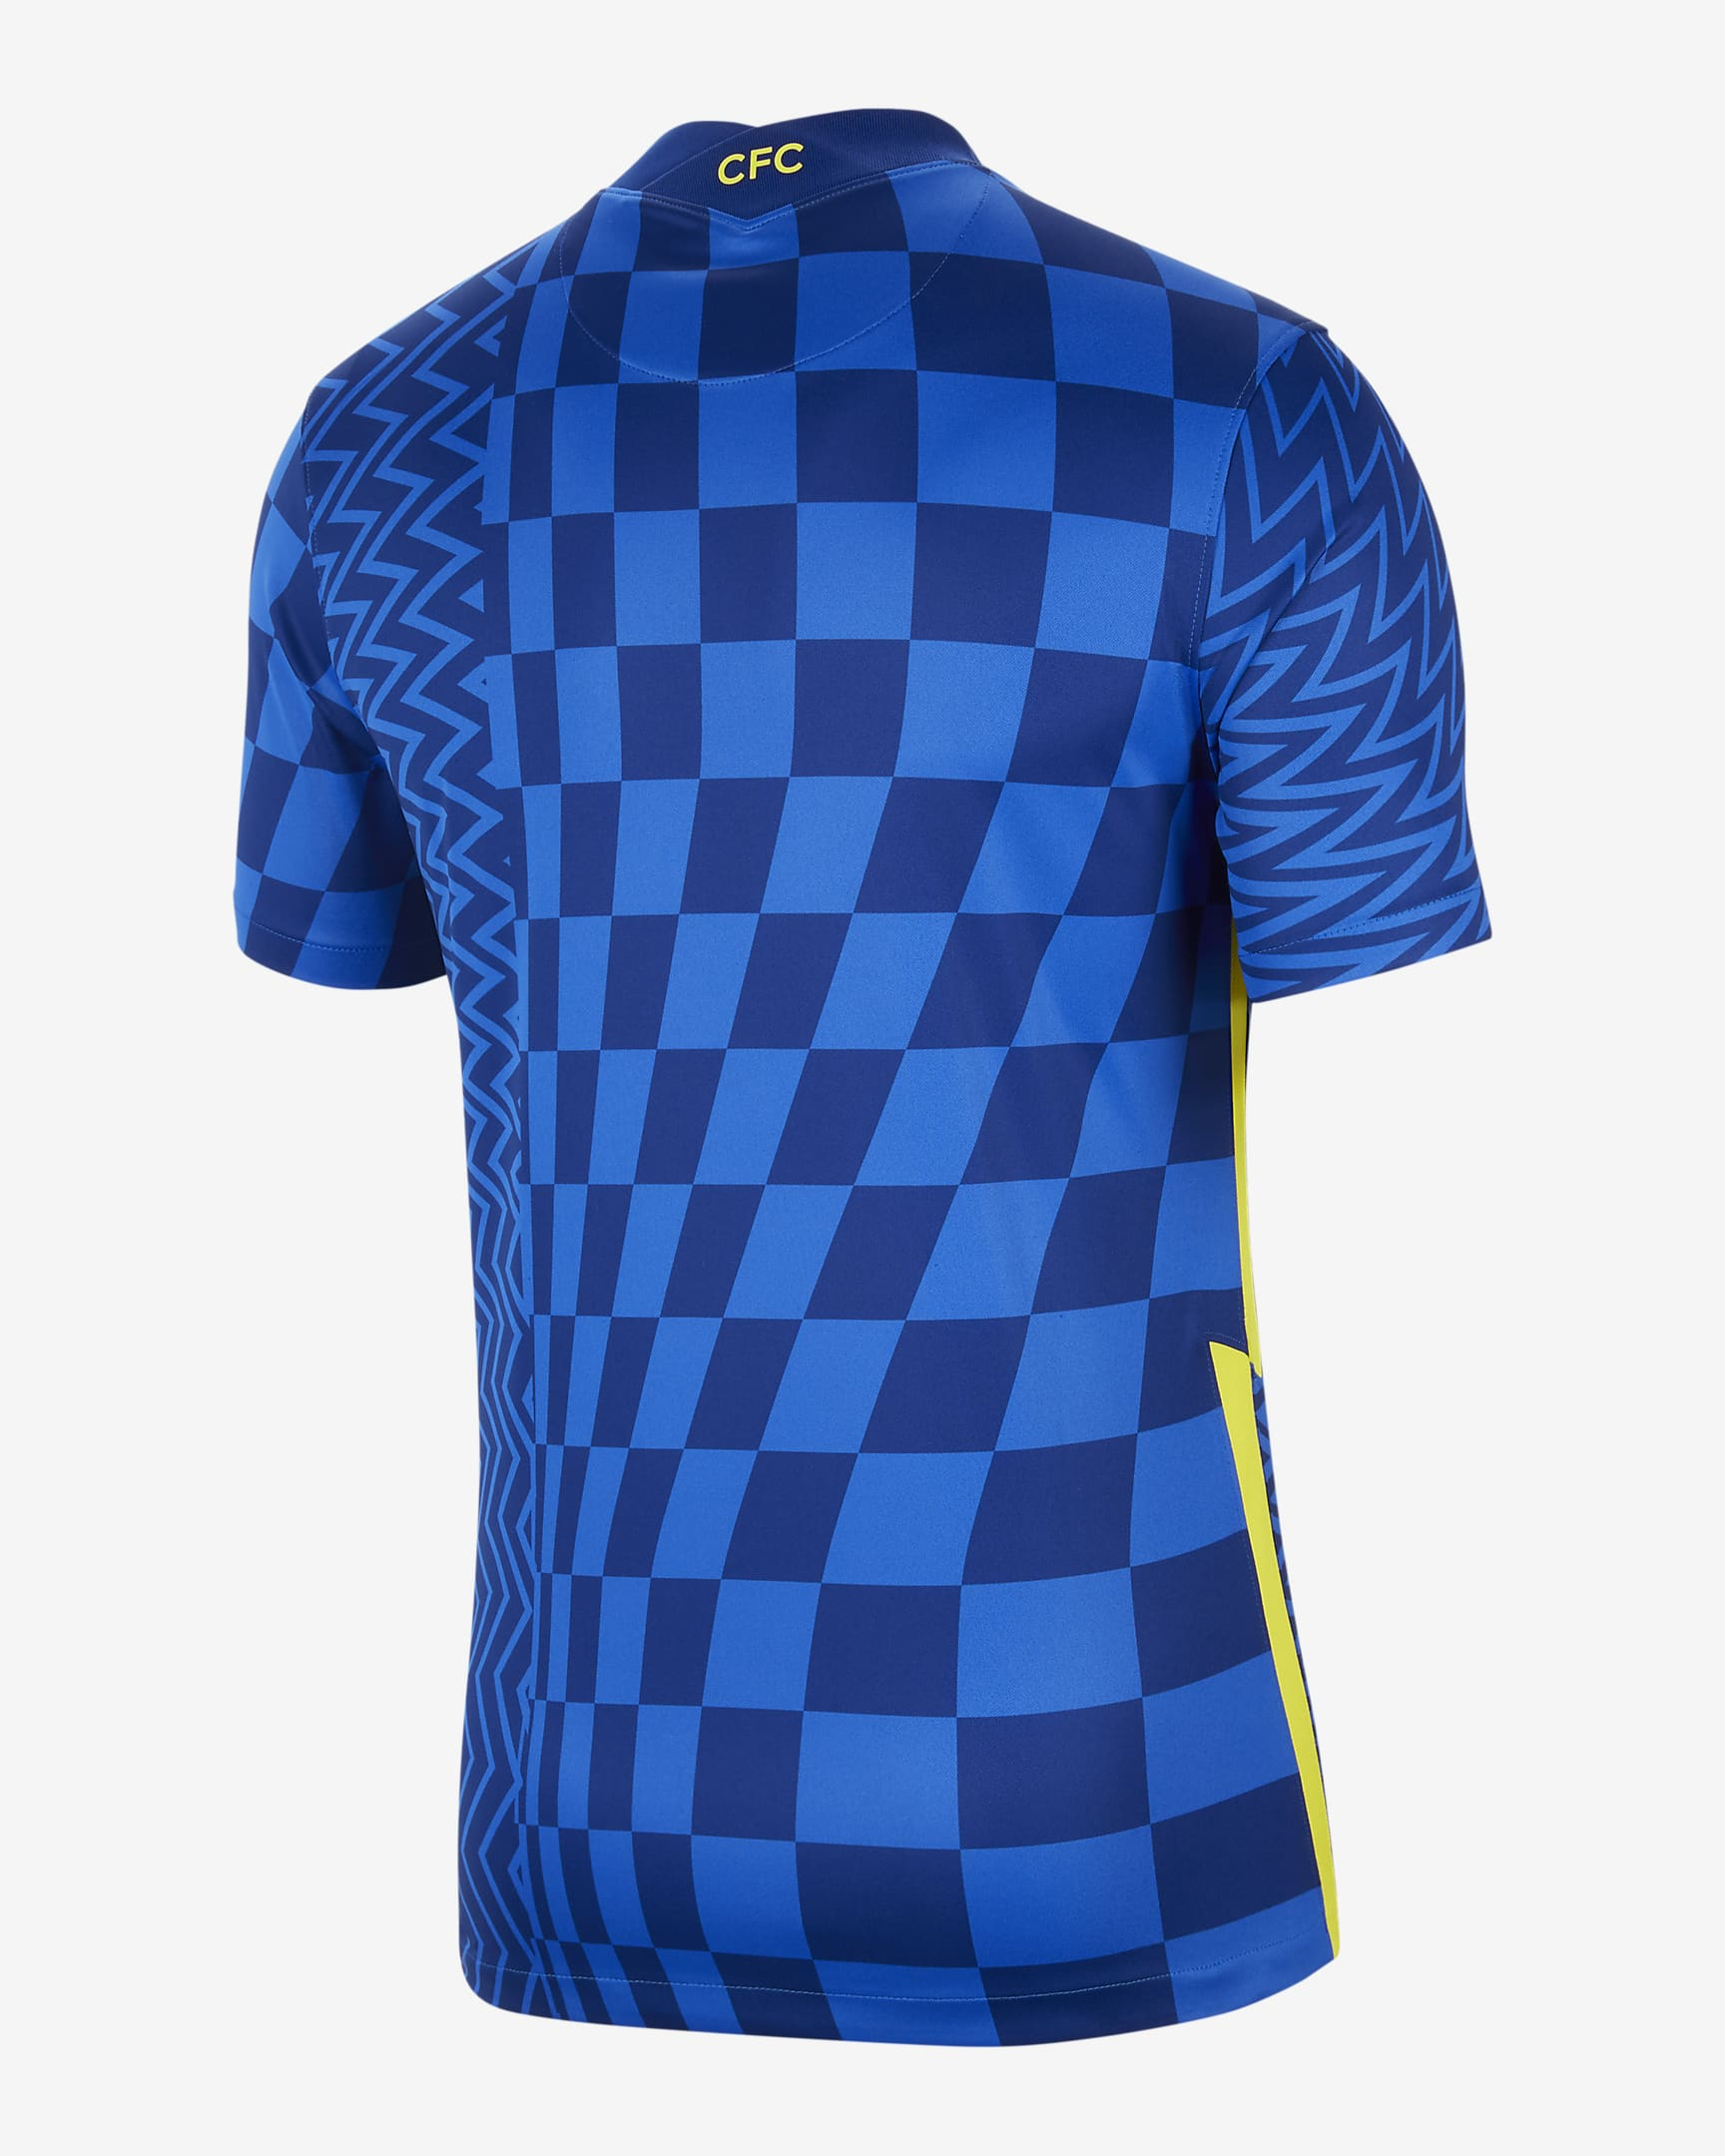 Replica Chelsea Home Jersey 2021/22 By Nike